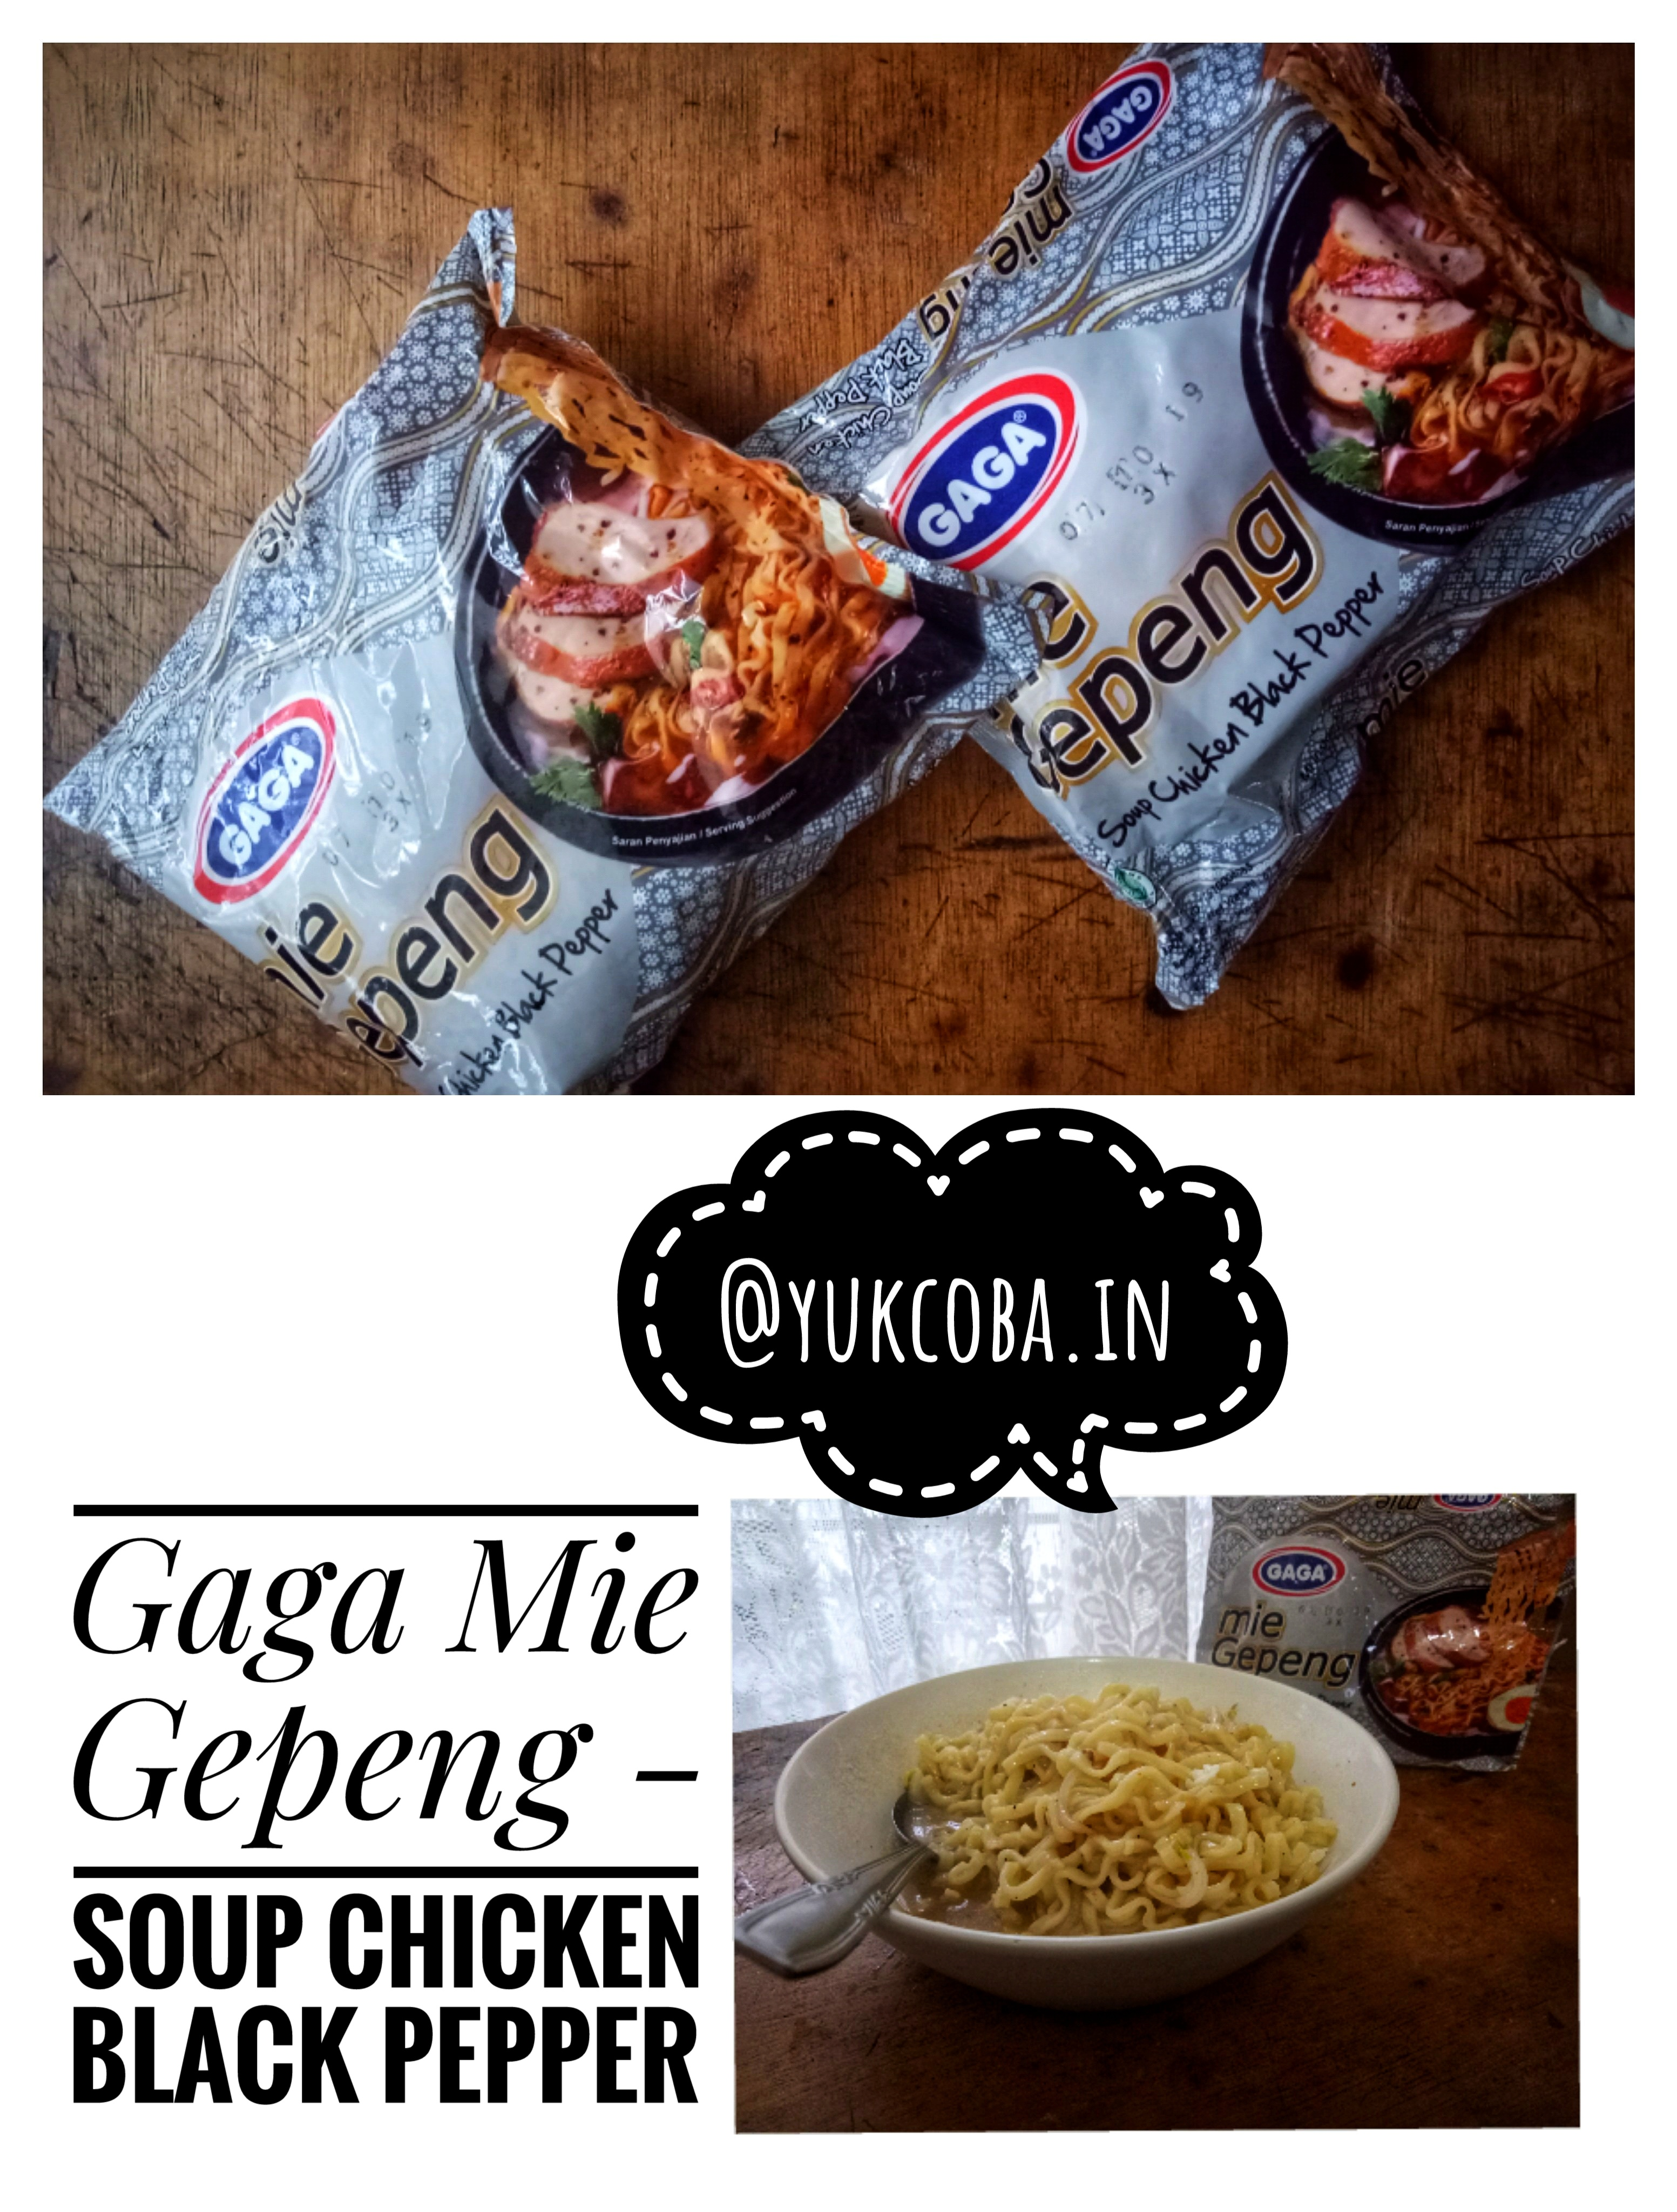 gambar review ke-3 untuk Gaga Mie Gepeng - Soup Chicken Black Pepper